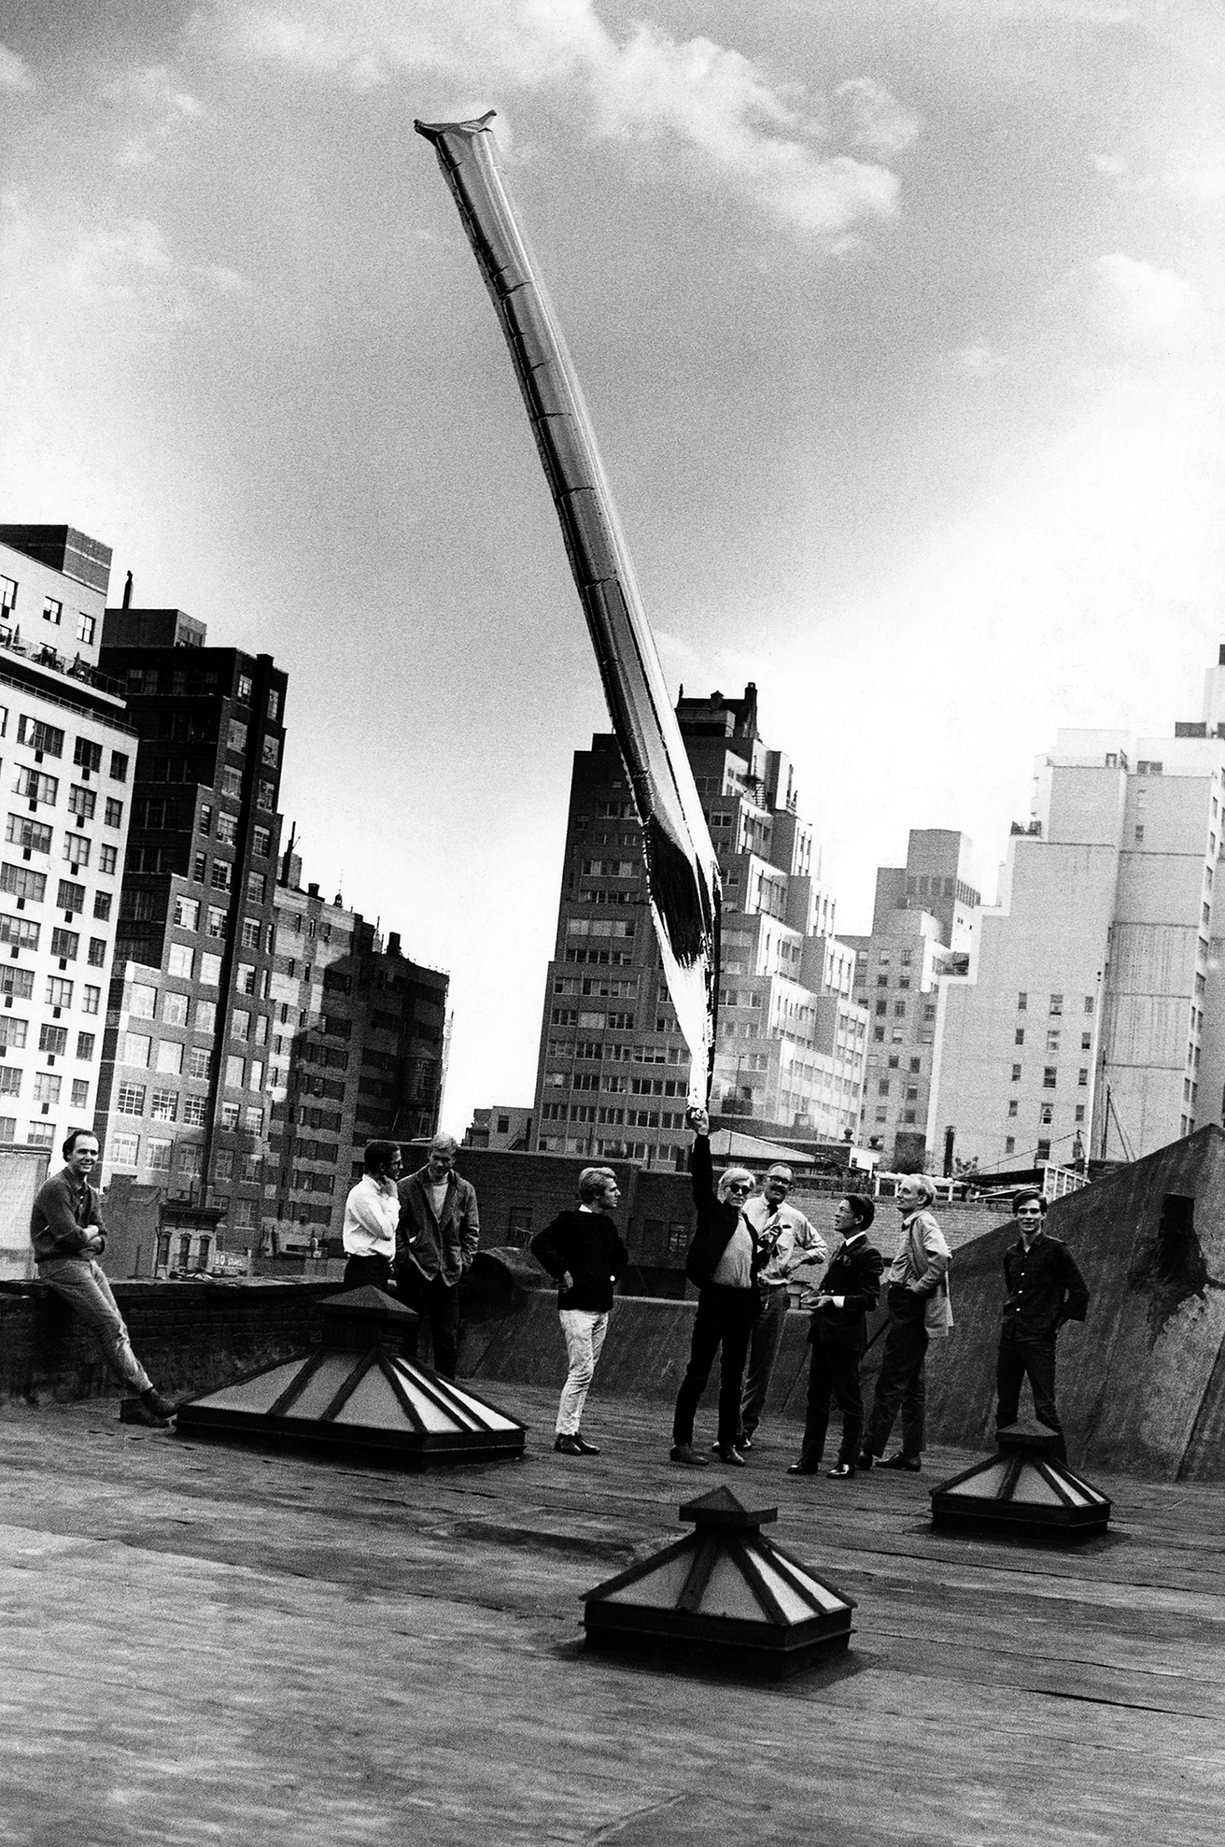 Andy Warhol, Gerard Malanga and others release a silver mylar balloon from the Factory rooftop on 47th Street. Photo by Billy Name